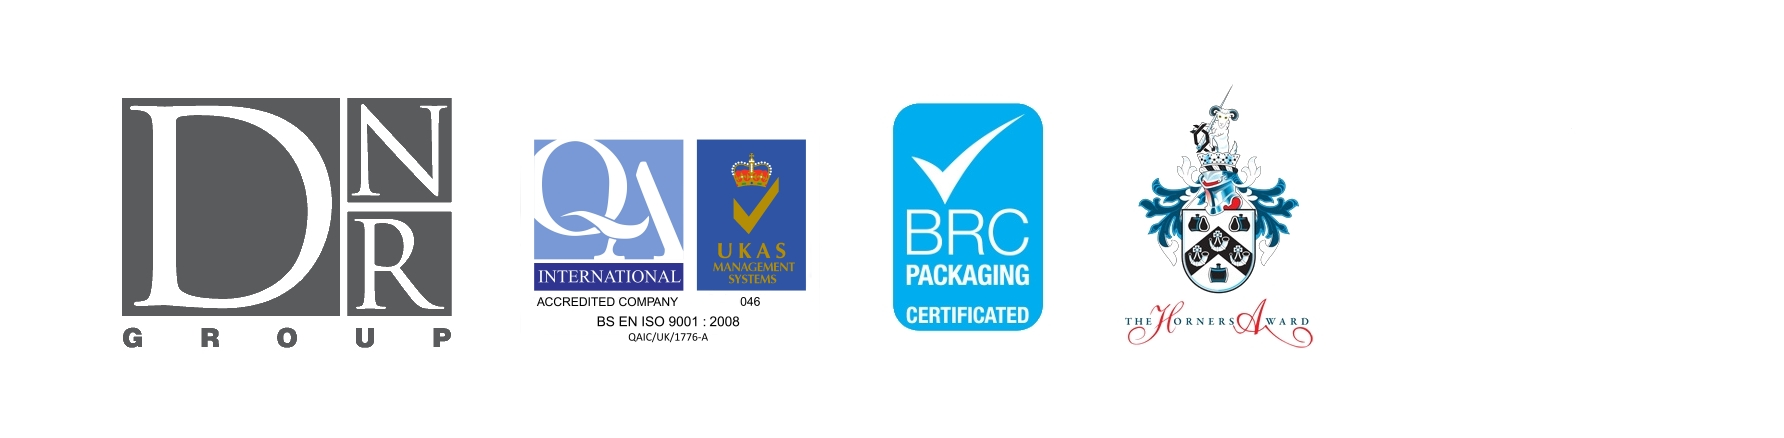 A member of the DNR Group of companies.  ISO 9001:2008 certified.  BRC Packaging certified.  A winner of The Horners Award.